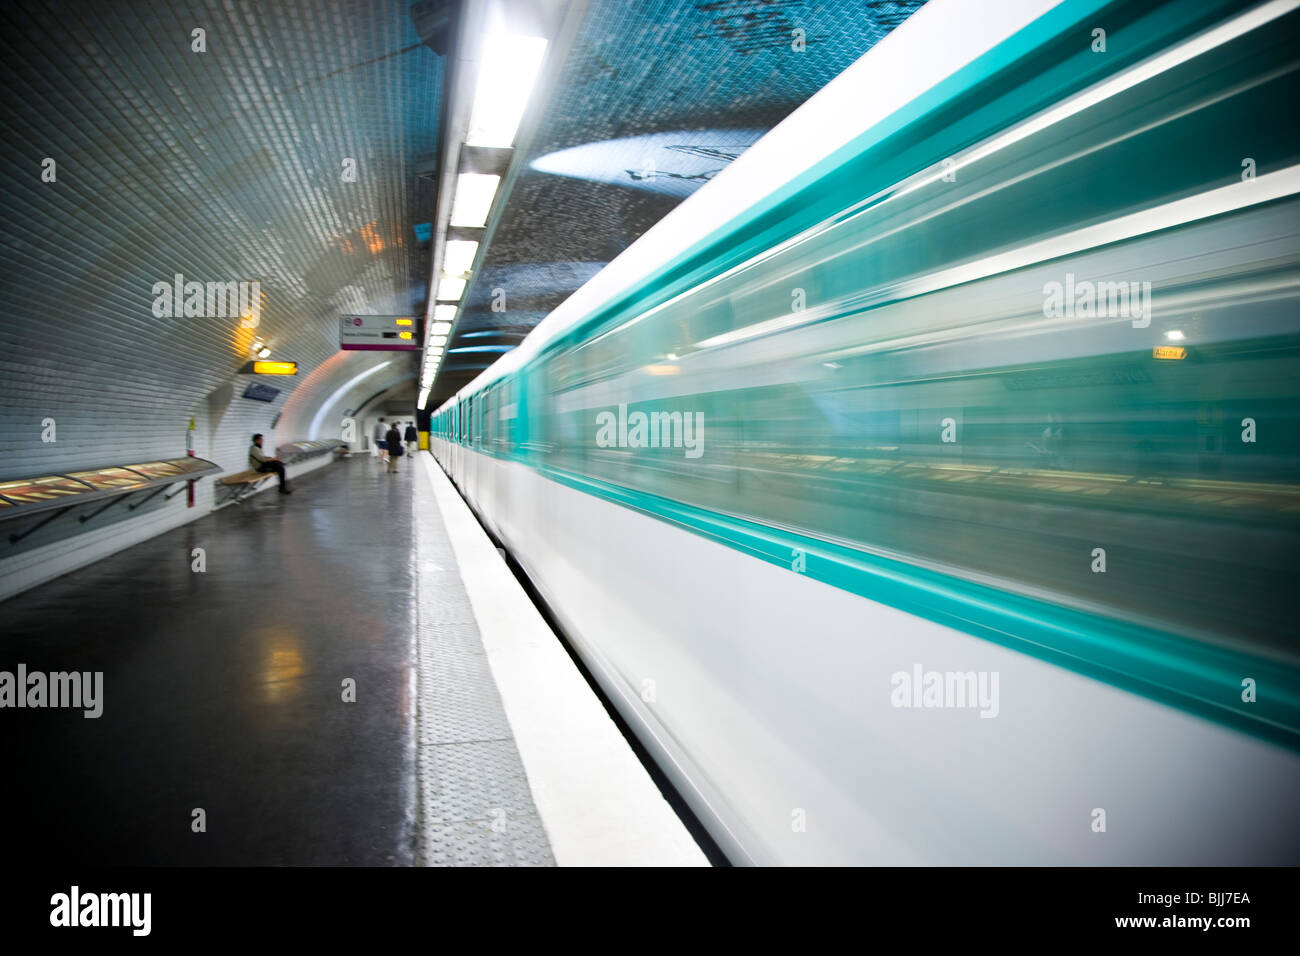 Subway platform with subway in motion - Stock Image